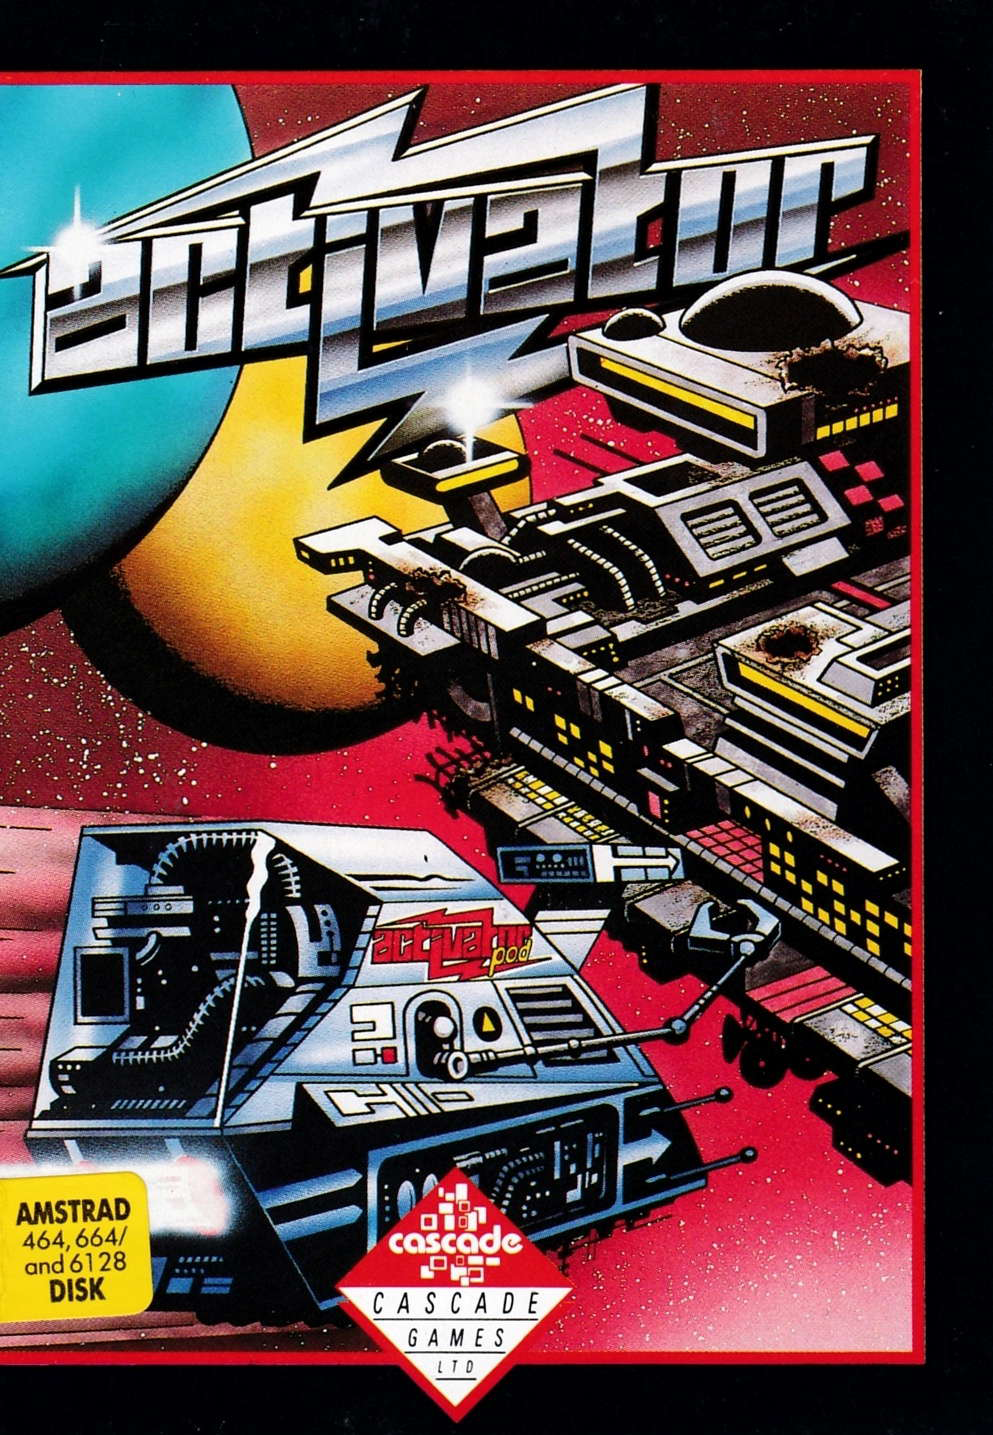 screenshot of the Amstrad CPC game Activator by GameBase CPC